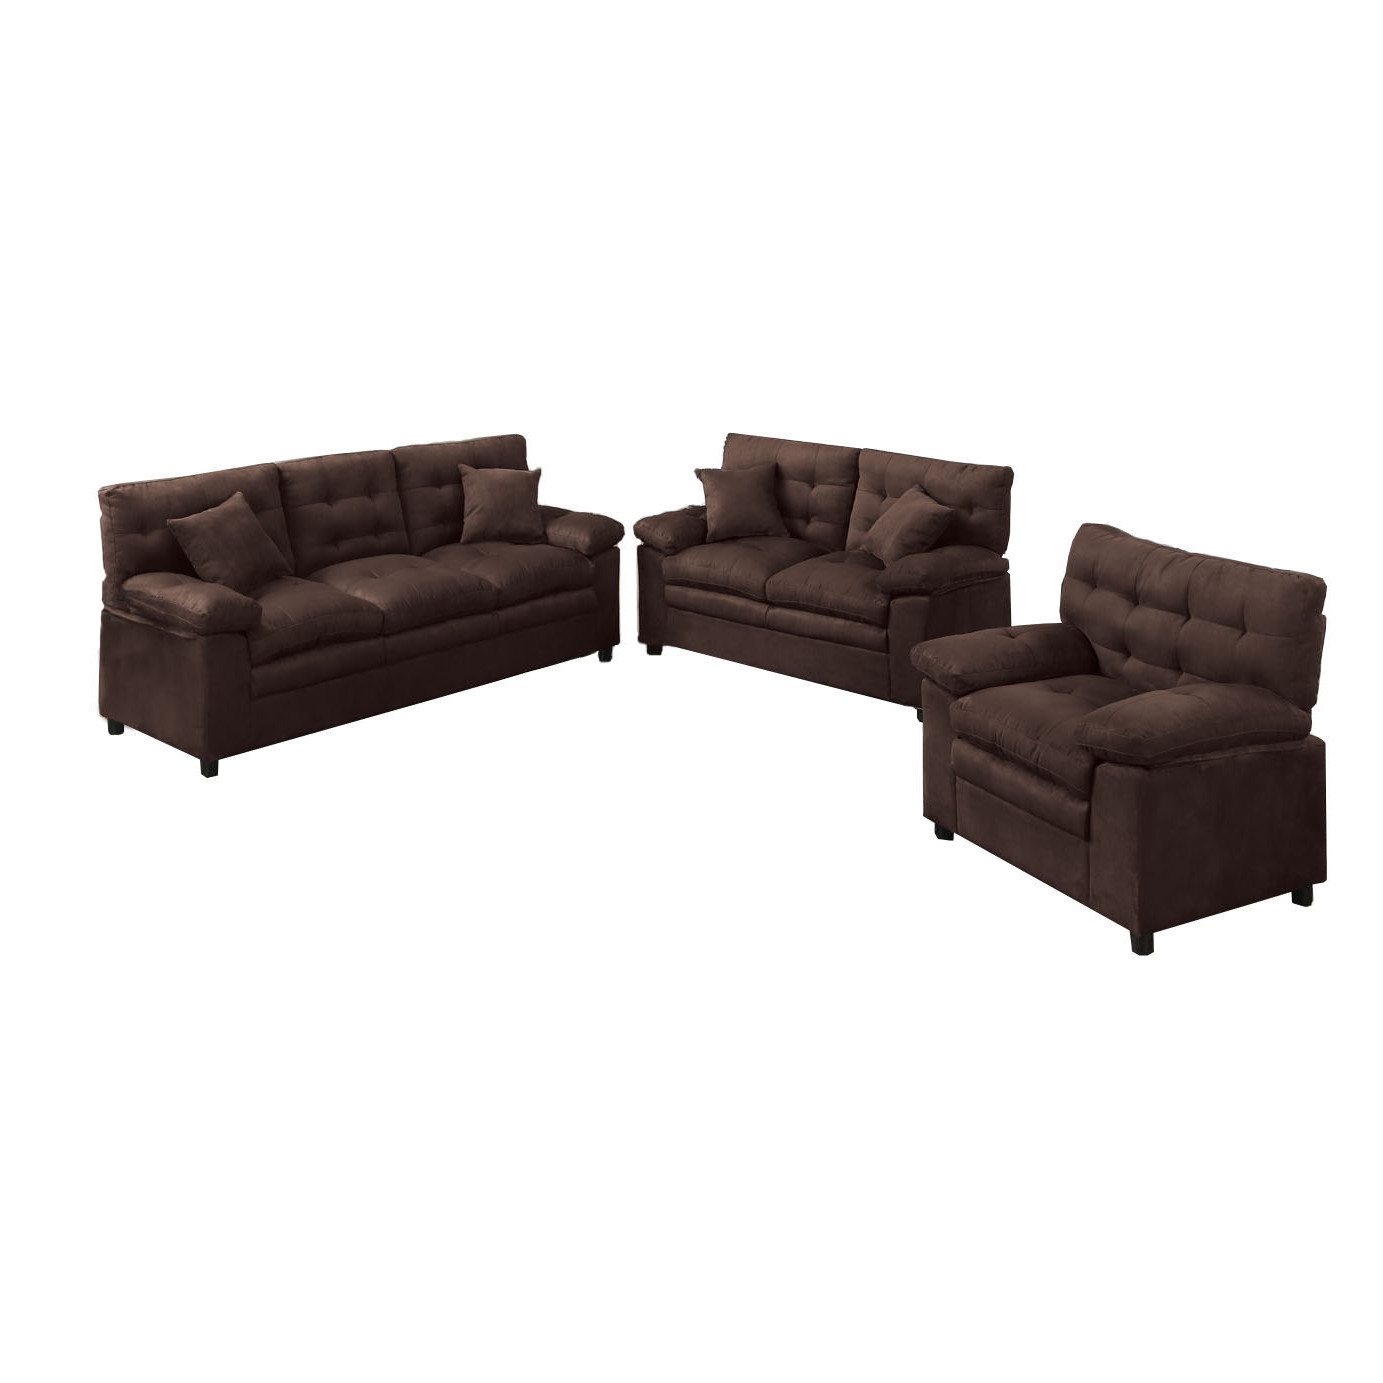 Sofa Set Price Rate 3pc Sofa Love Seat And Chair F7908 Bb 39s Furniture Store